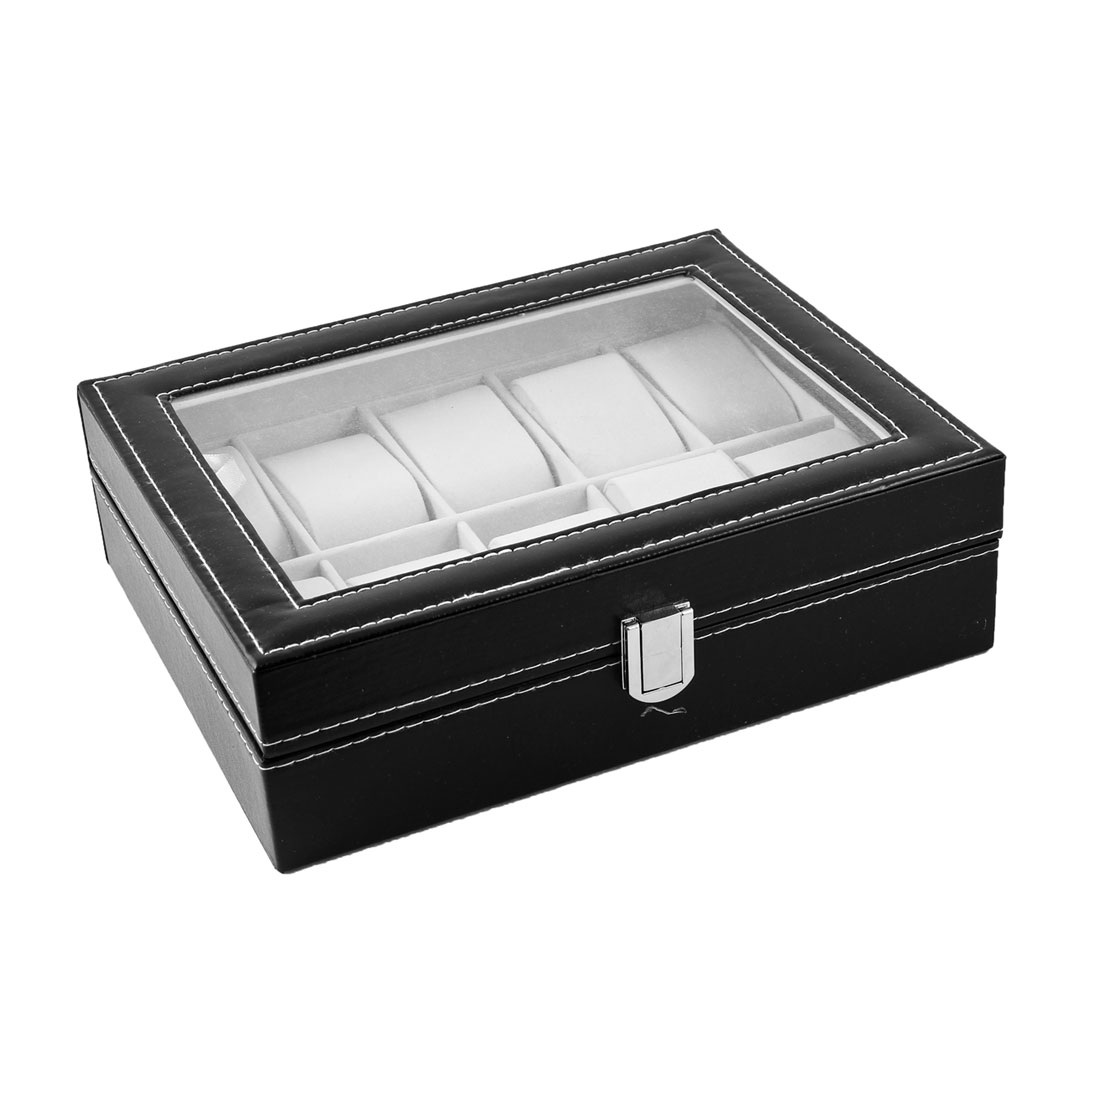 Black 10 Compartment Gift Bracelet Watch Display Box Holder Container